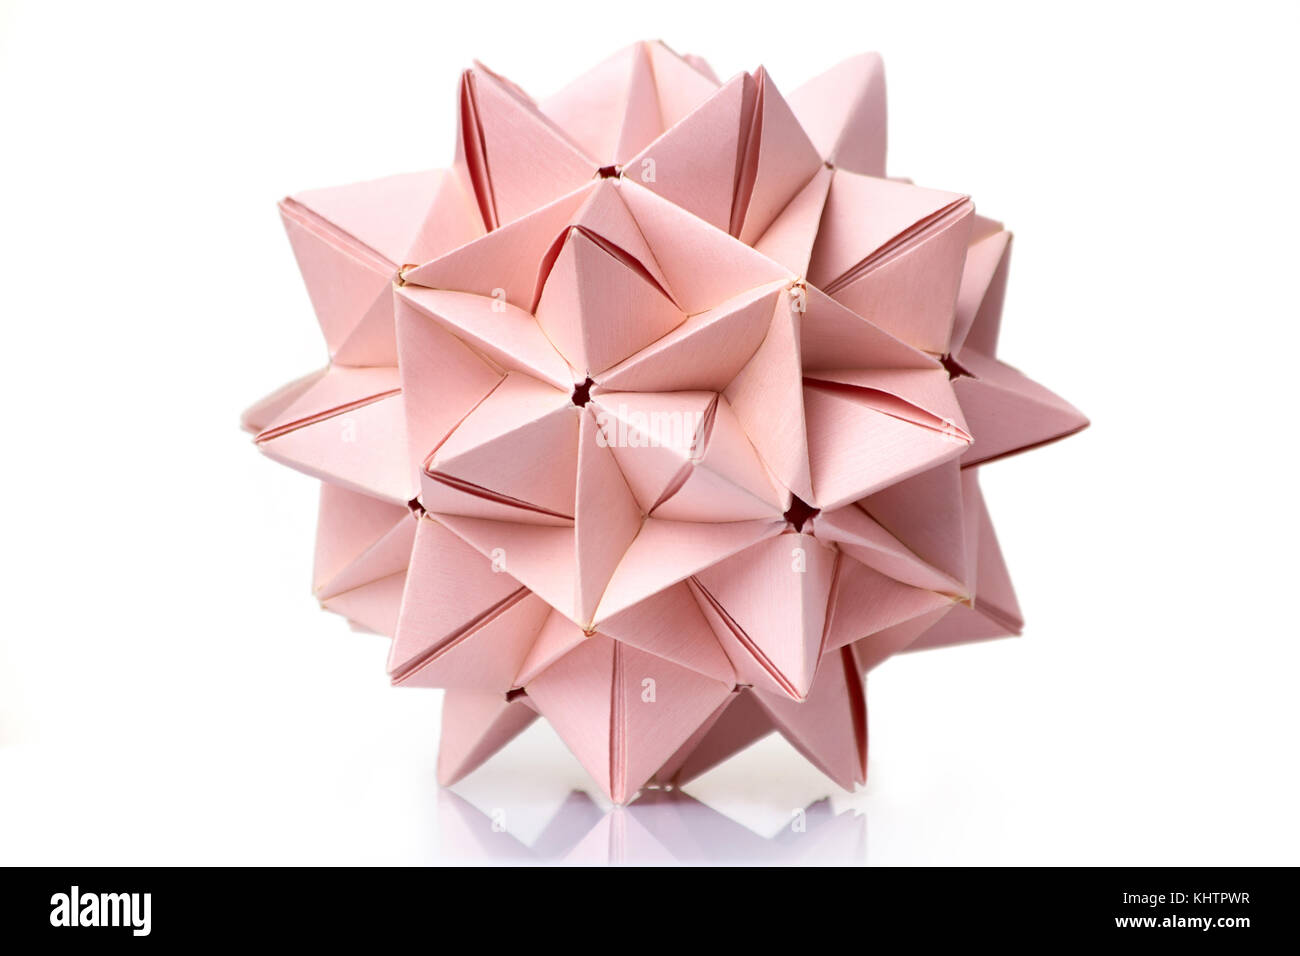 Blue origami transforming spiky ball. bright isolated background.   956x1300